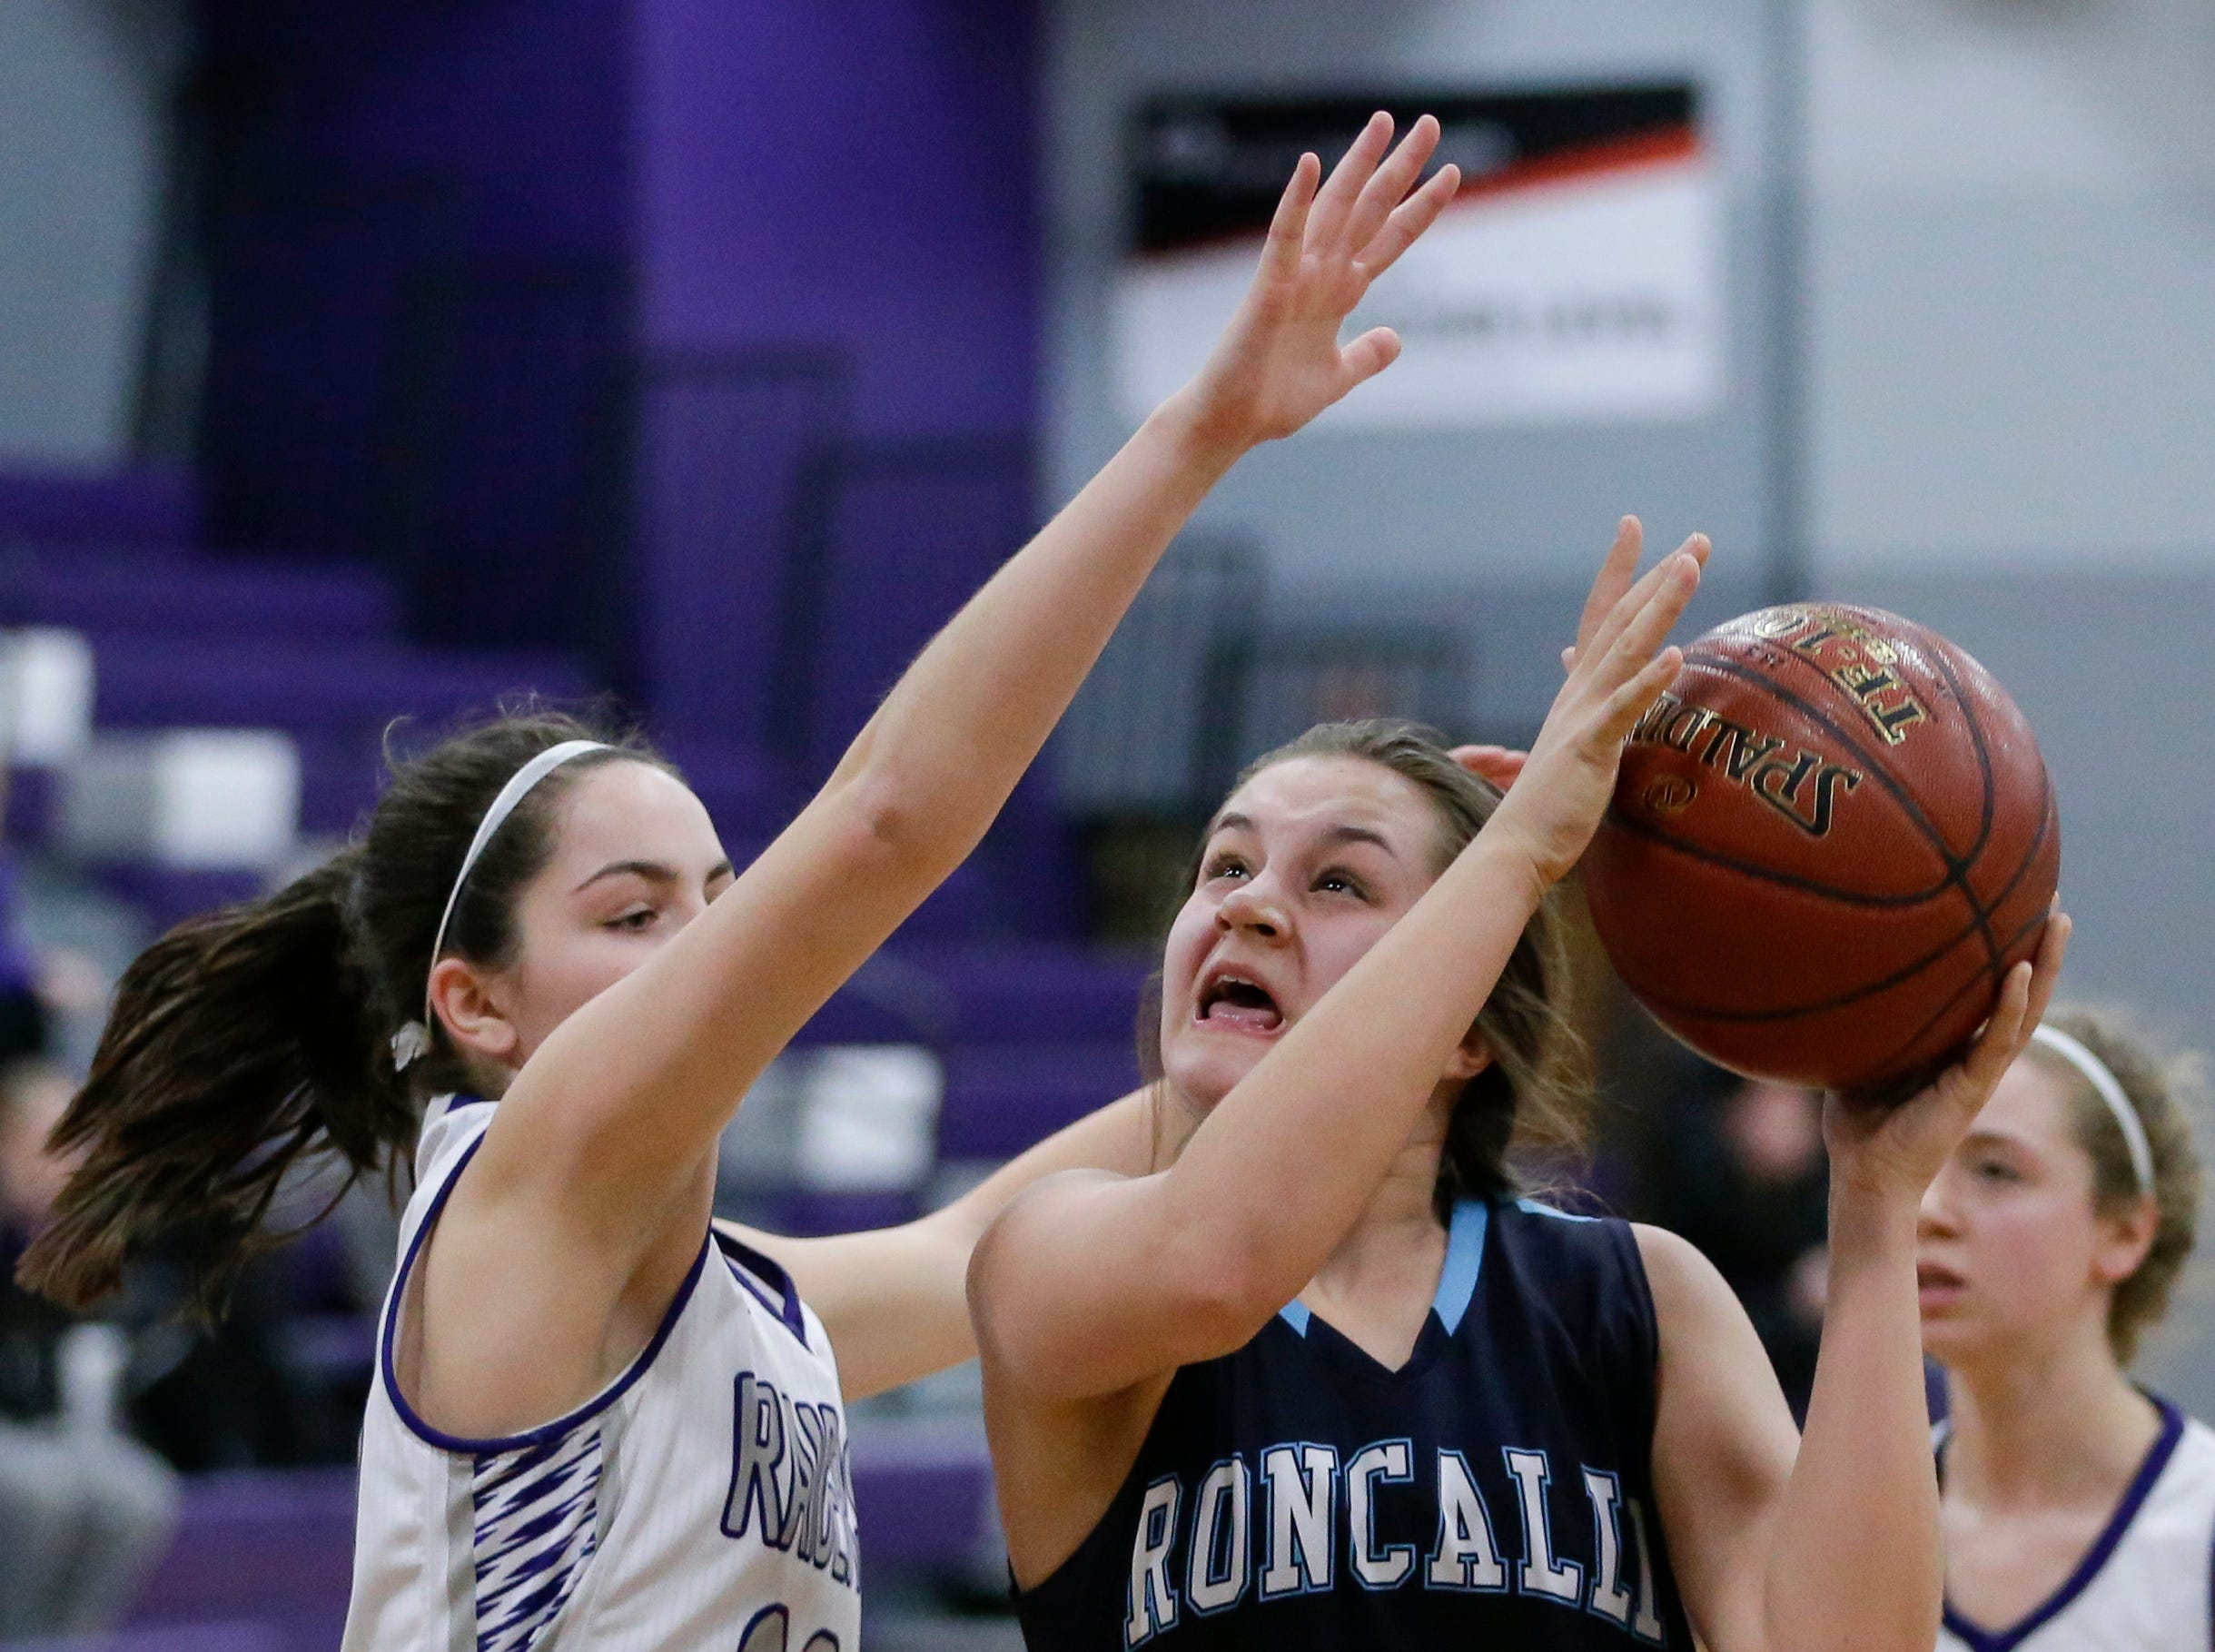 Roncalli's Lily Nelson (10) goes to the basket against Kiel during an EWC matchup at Kiel High School Thursday, January 17, 2019, in Kiel, Wis. Joshua Clark/USA TODAY NETWORK-Wisconsin